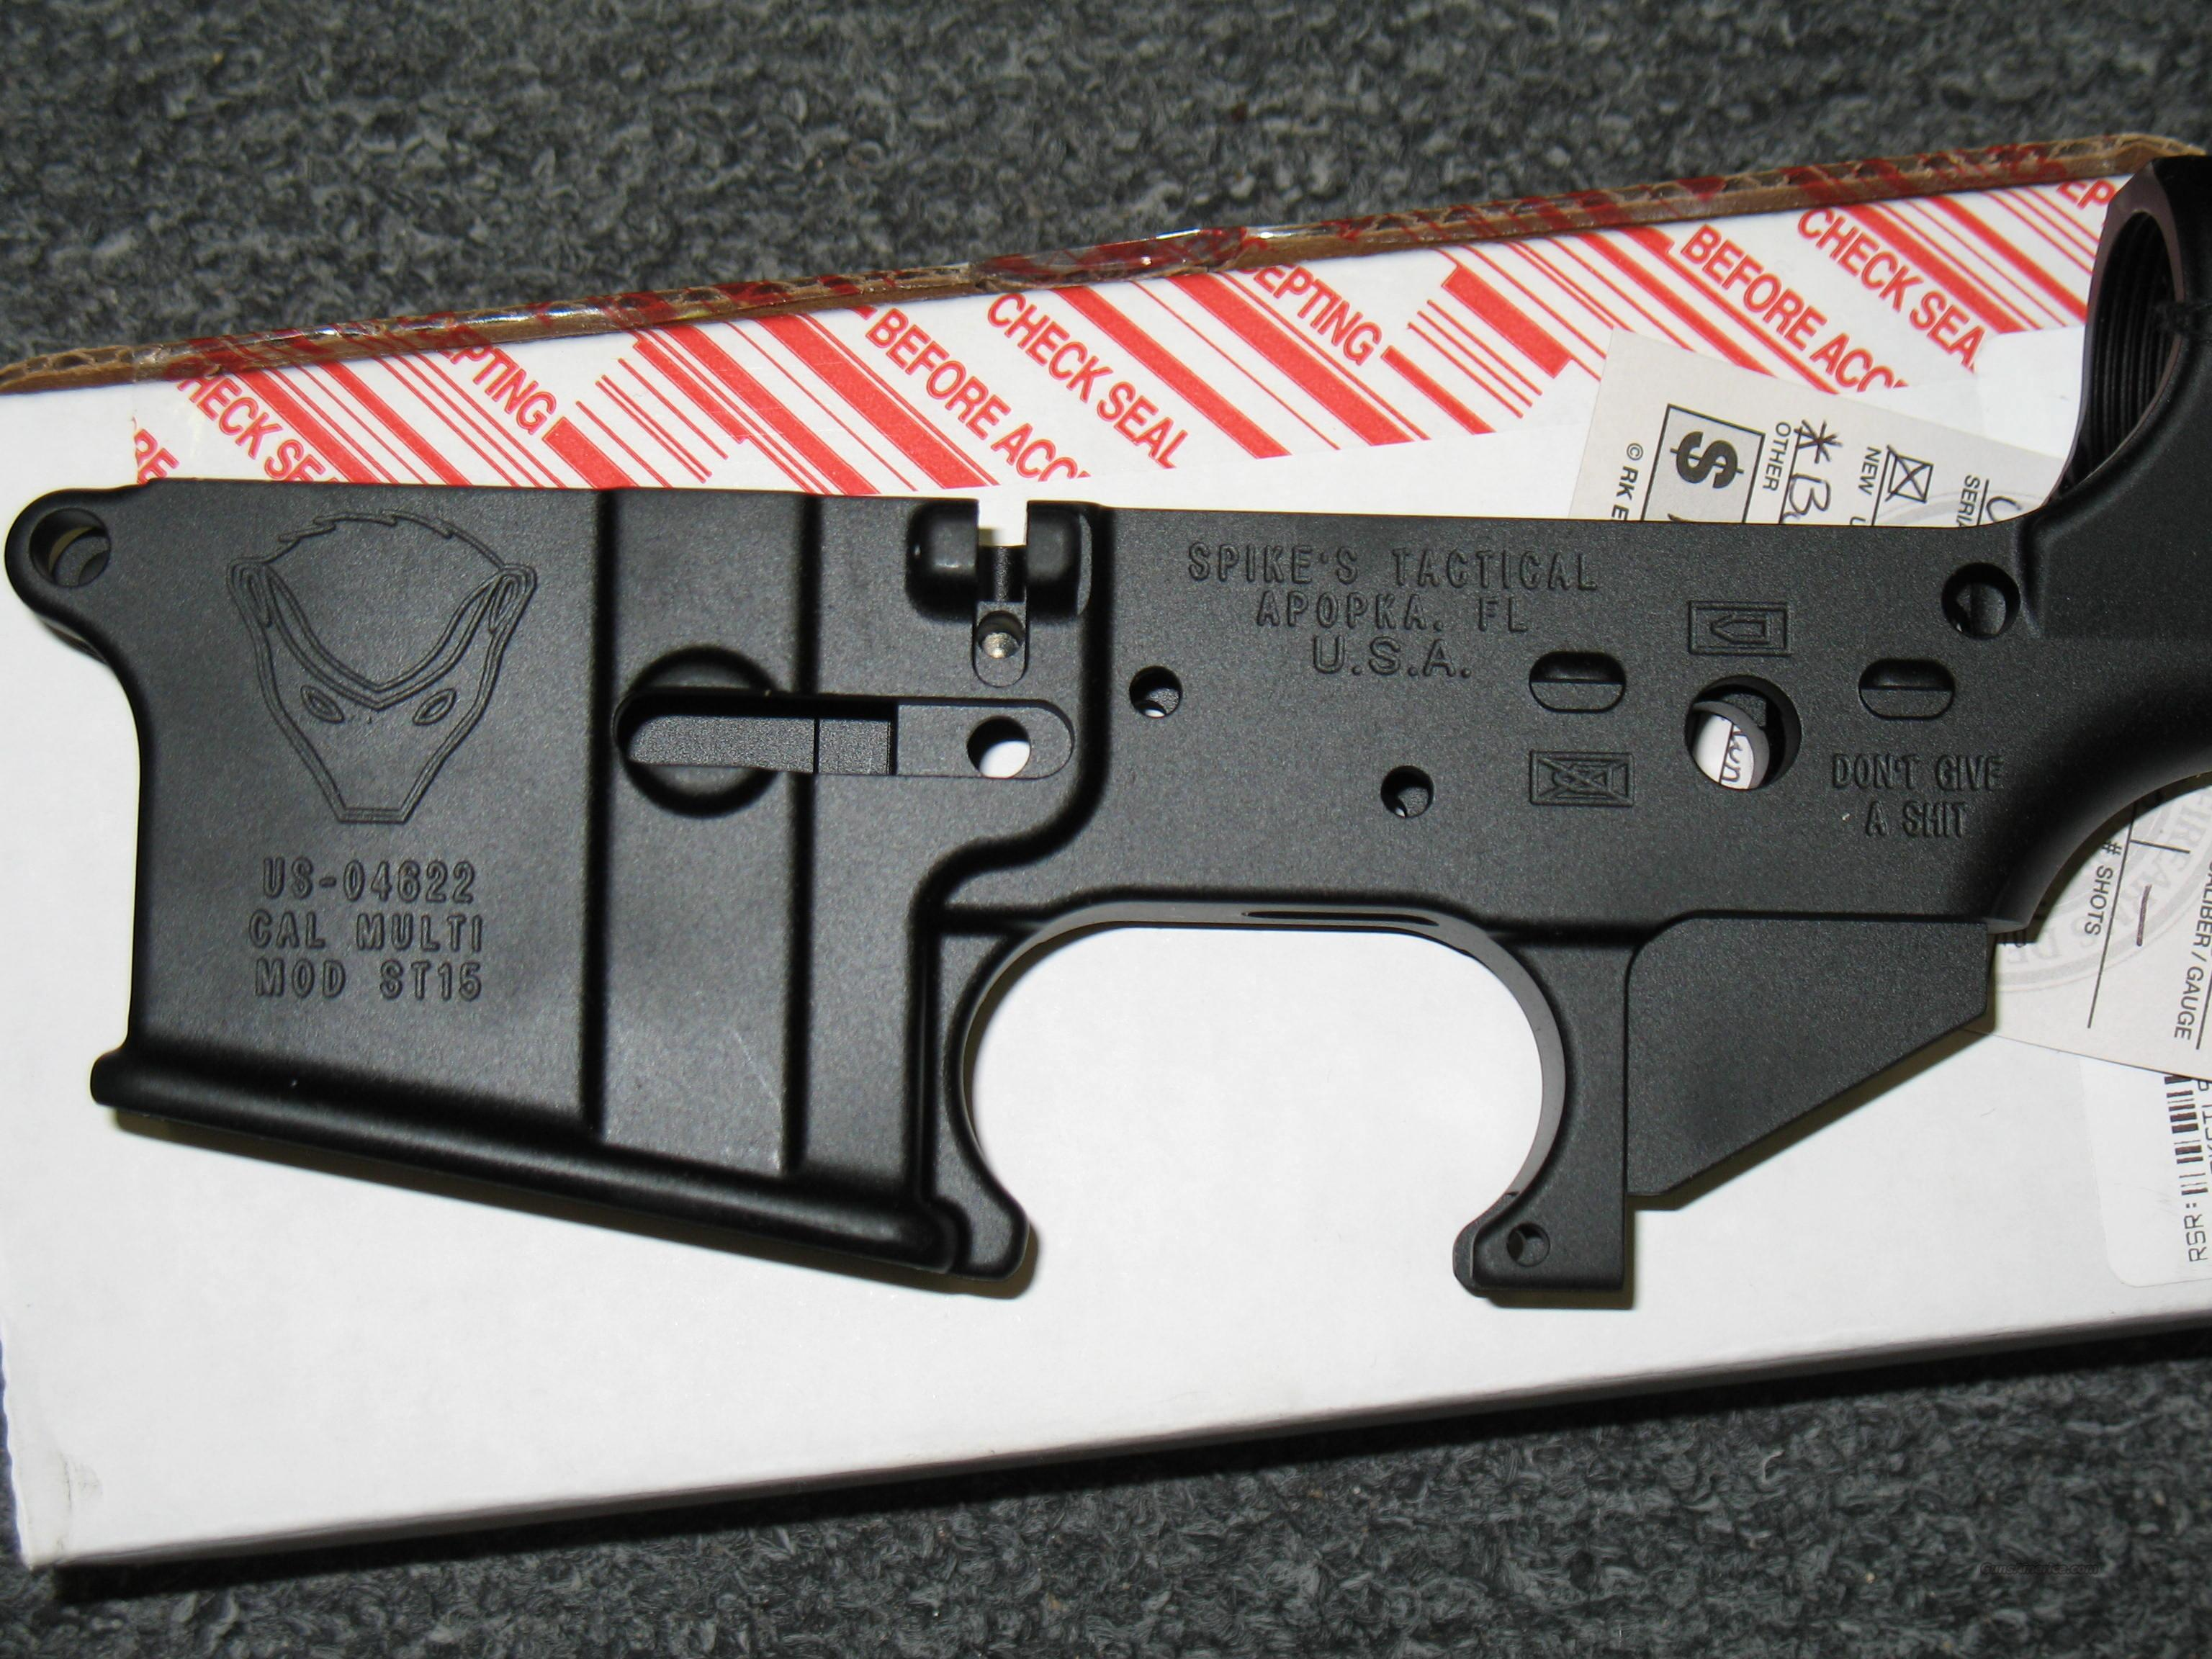 Spike's Tactical ST15 receiver (Honey Badger)  Guns > Rifles > AR-15 Rifles - Small Manufacturers > Lower Only